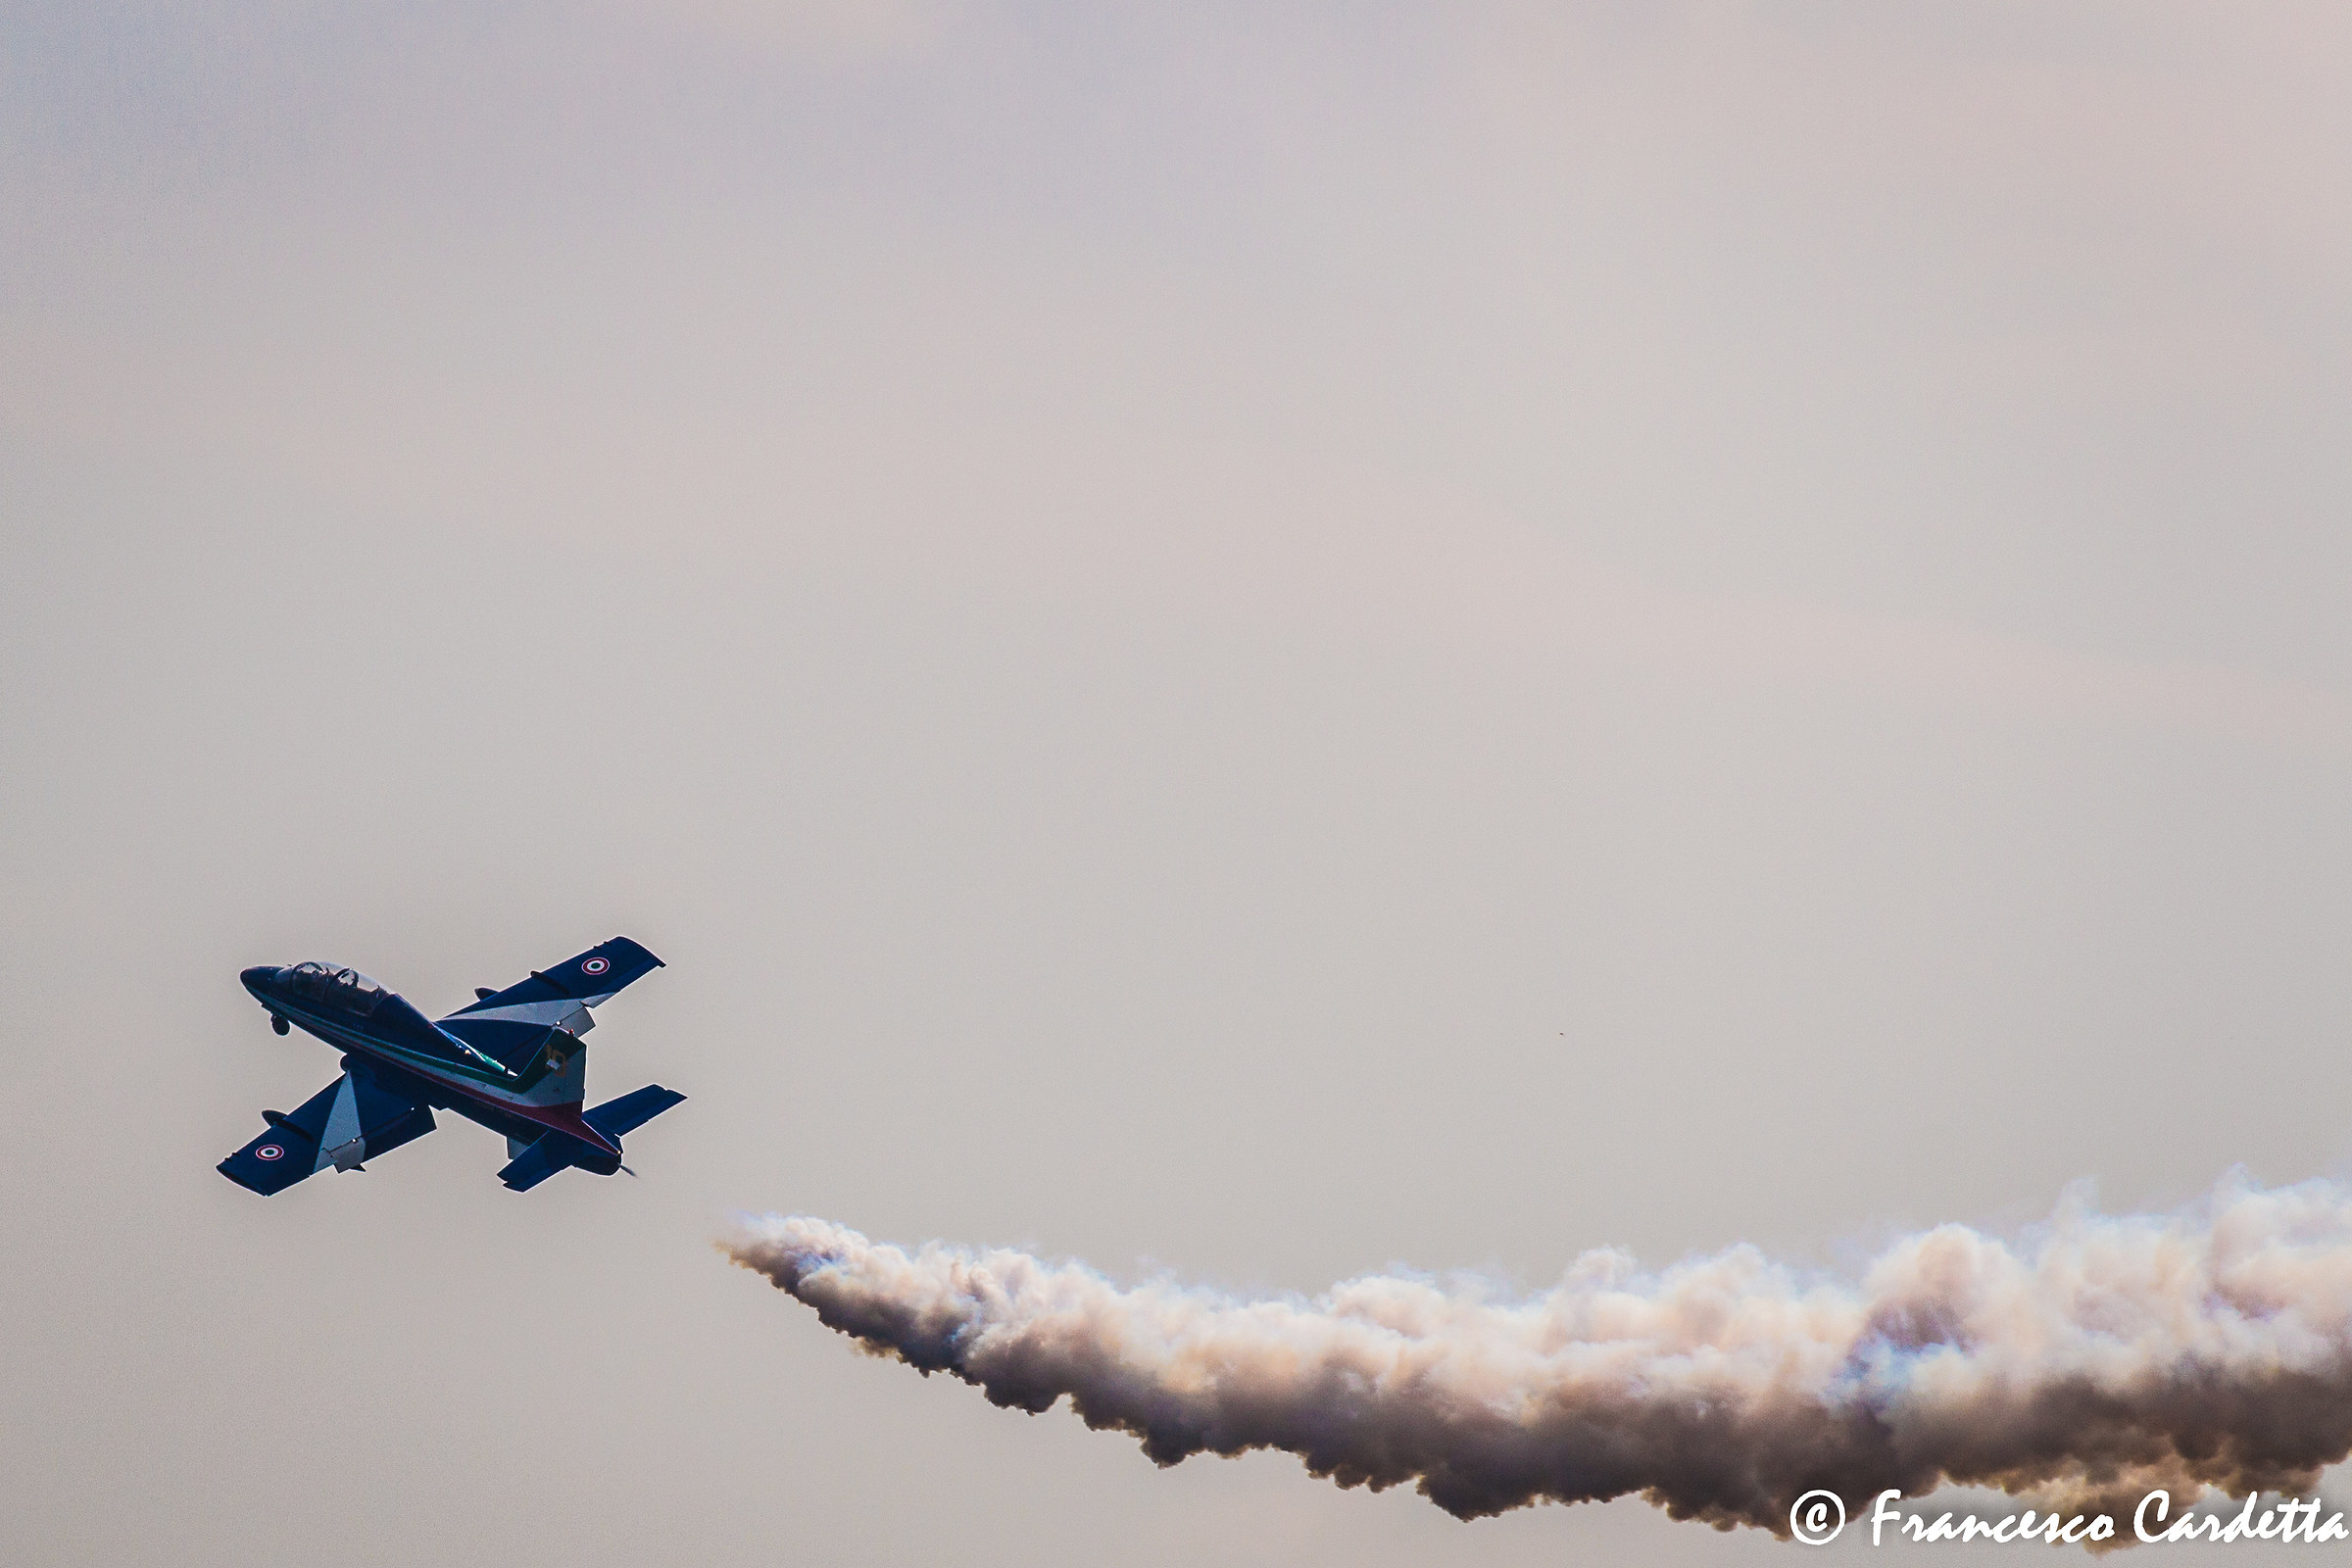 Arona Air-show Frecce Tricolore 07/01/16 (test)...